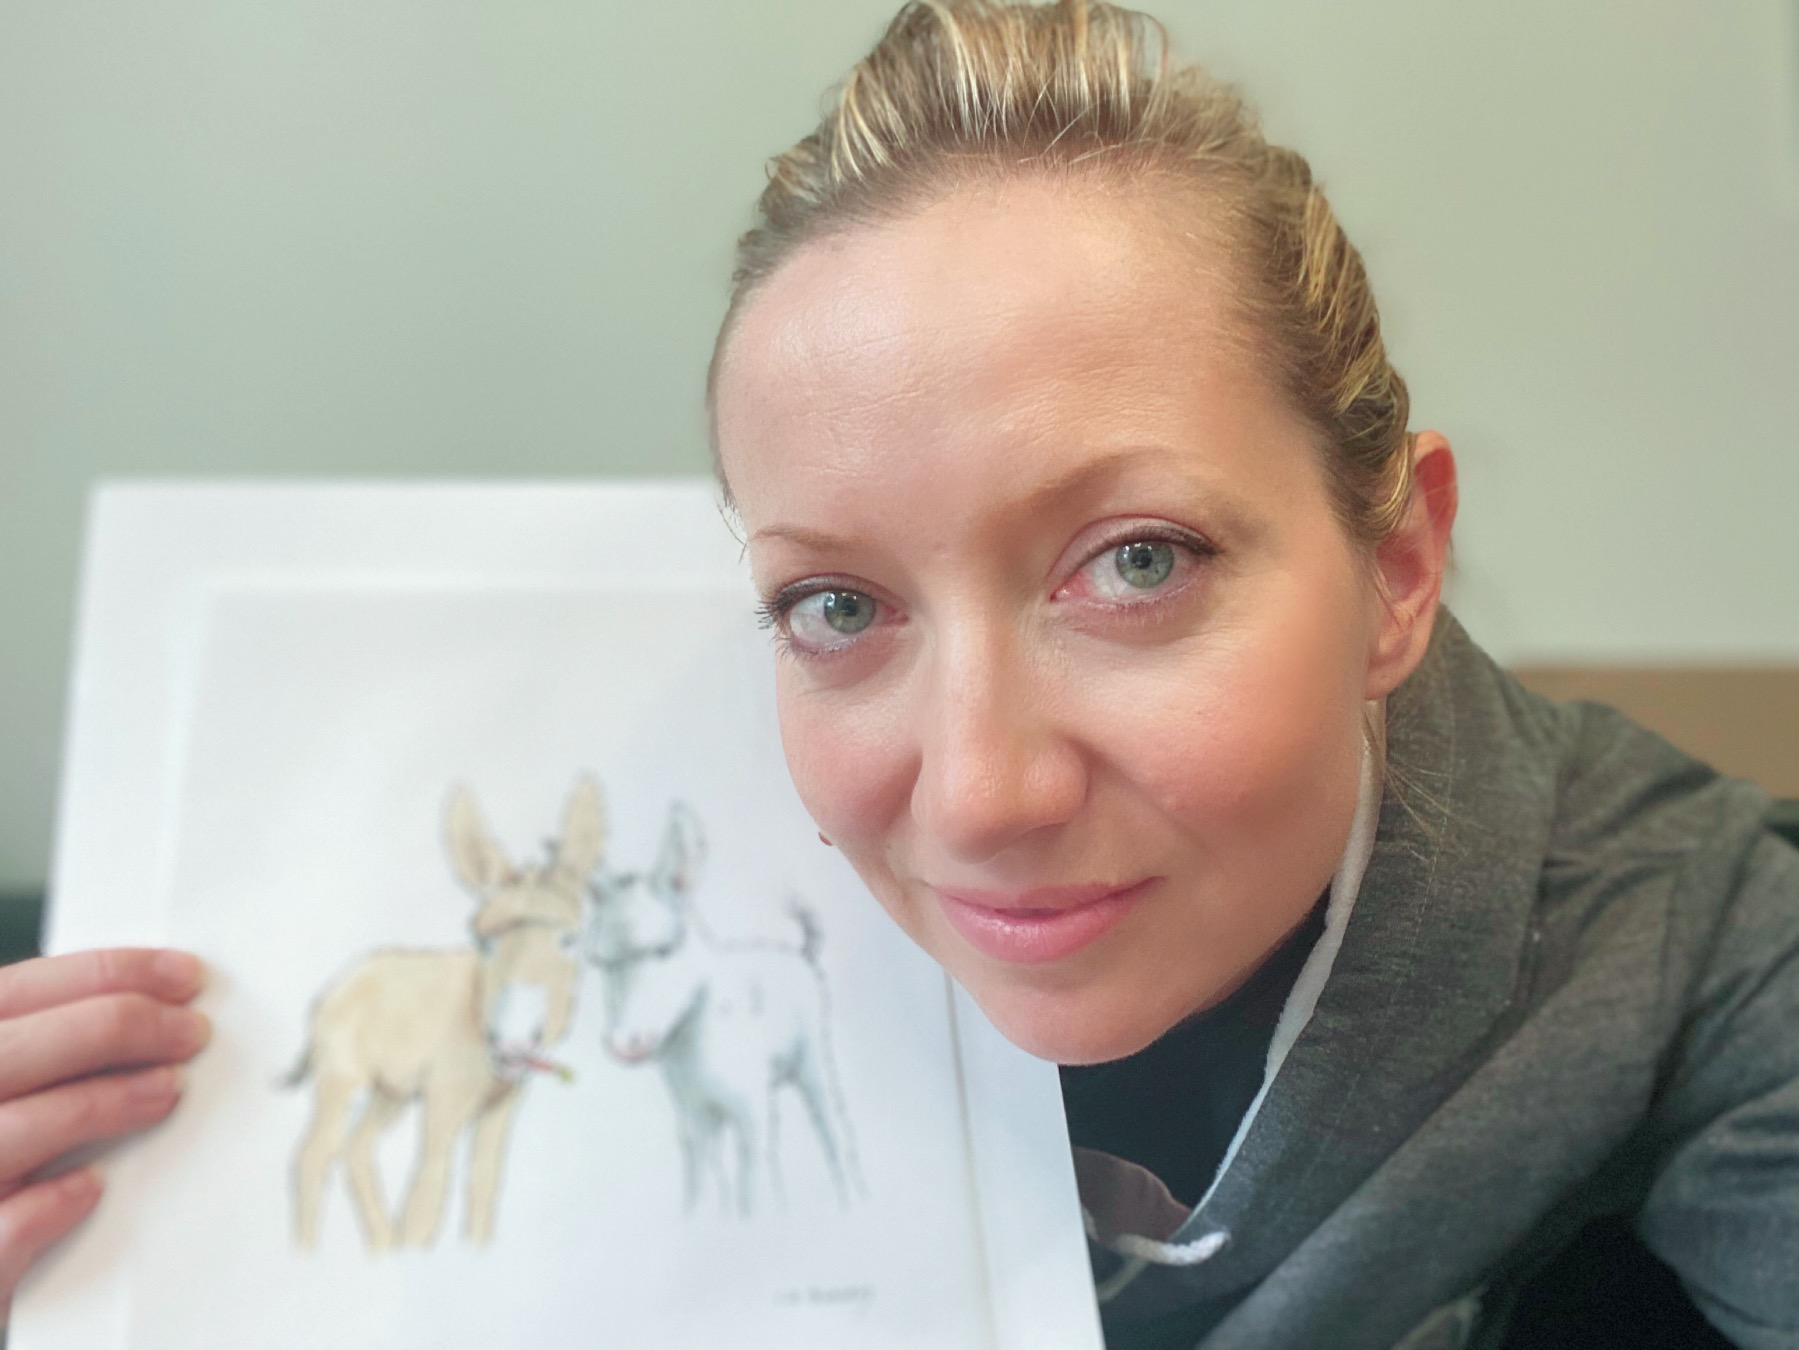 EXCLUSIVE! Baby Donkeys Coco and Eli illustration video